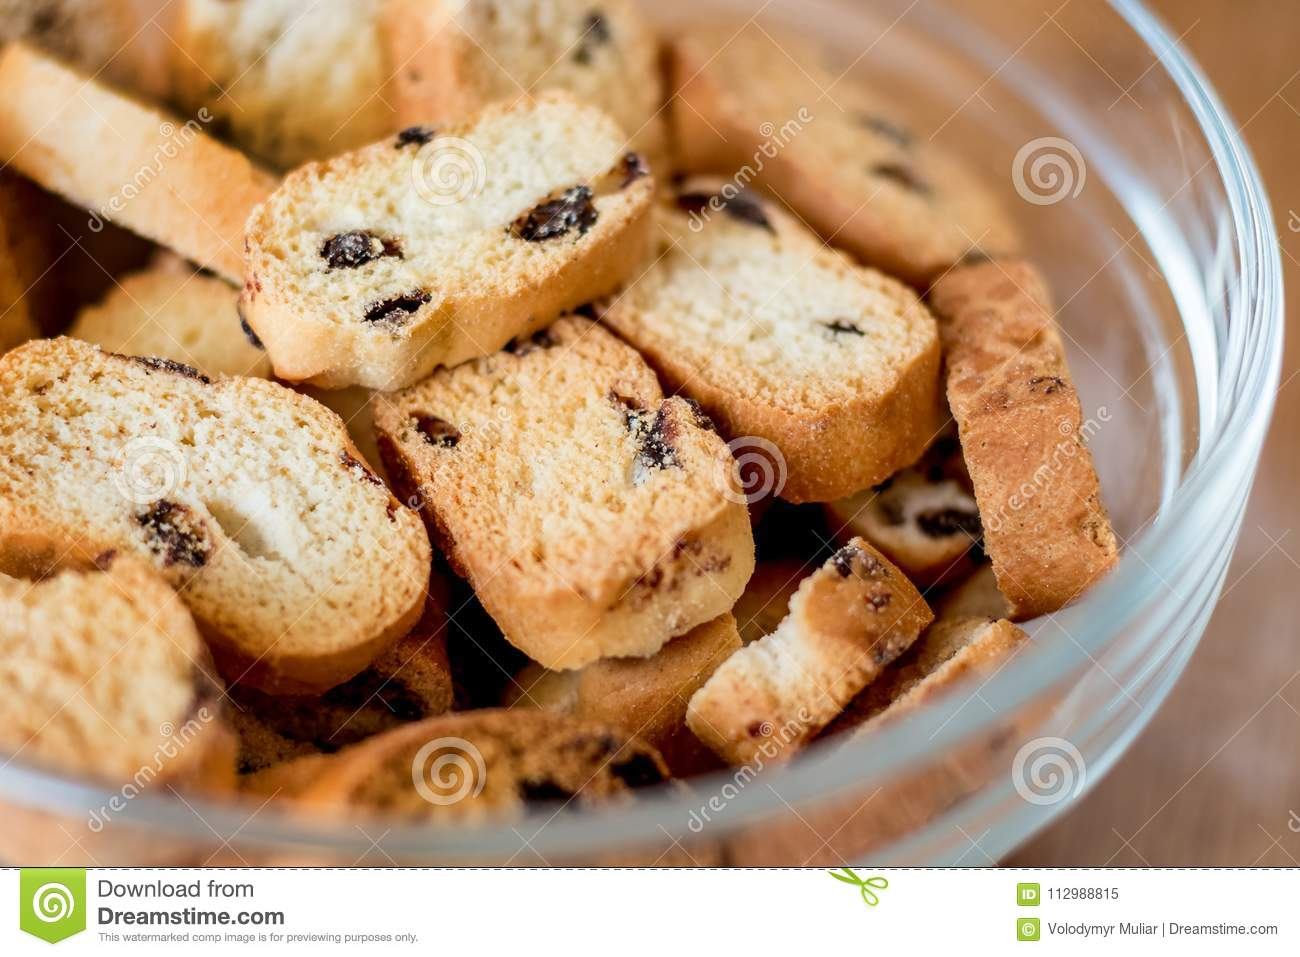 Rusks with raisins; sale and purchase of confectionery_